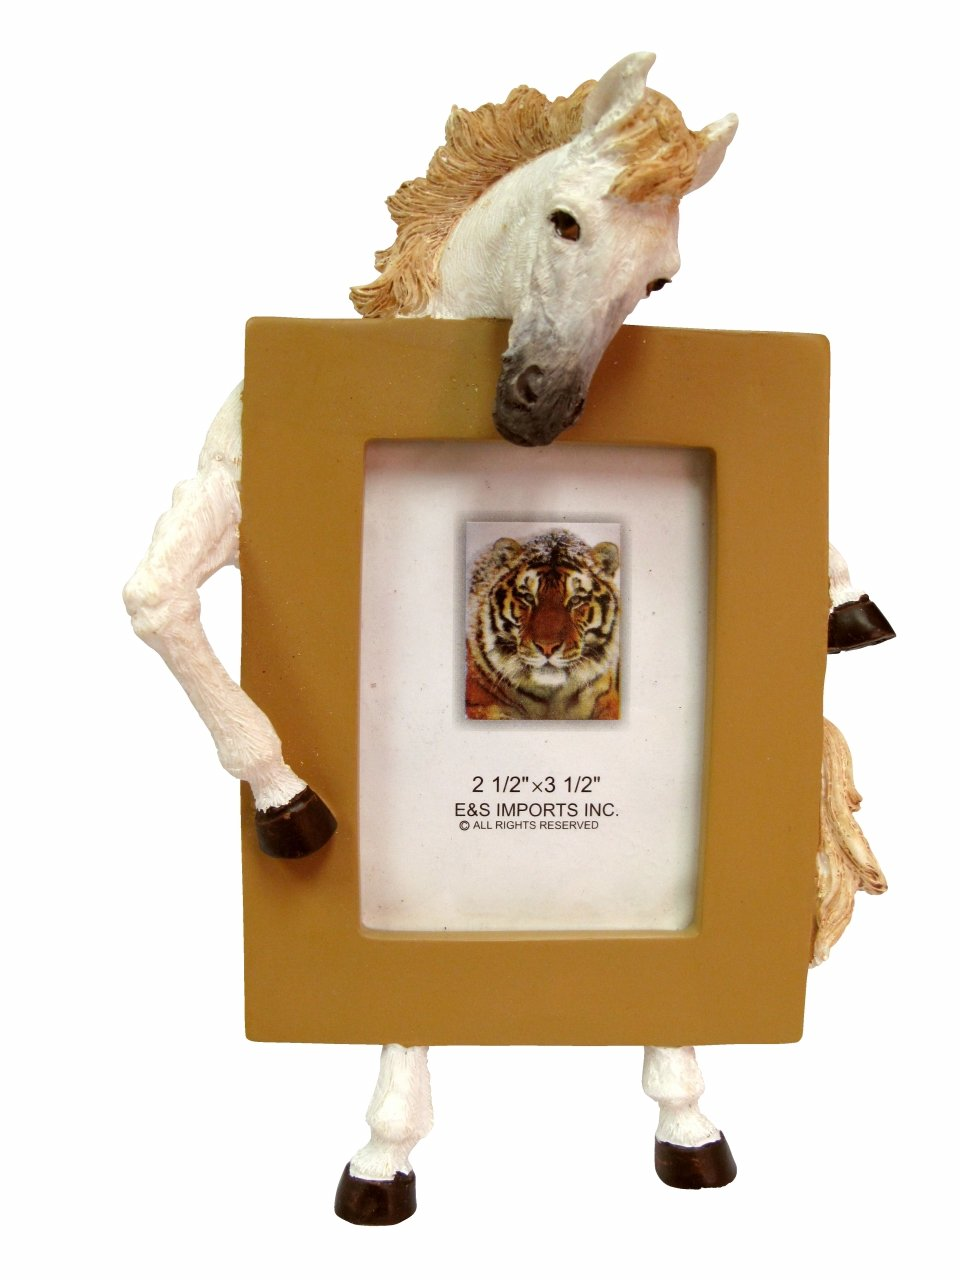 White Standing Horse Photo Frame For 2.5 by 3.5 Inches Picture by E&S Pets (Image #1)